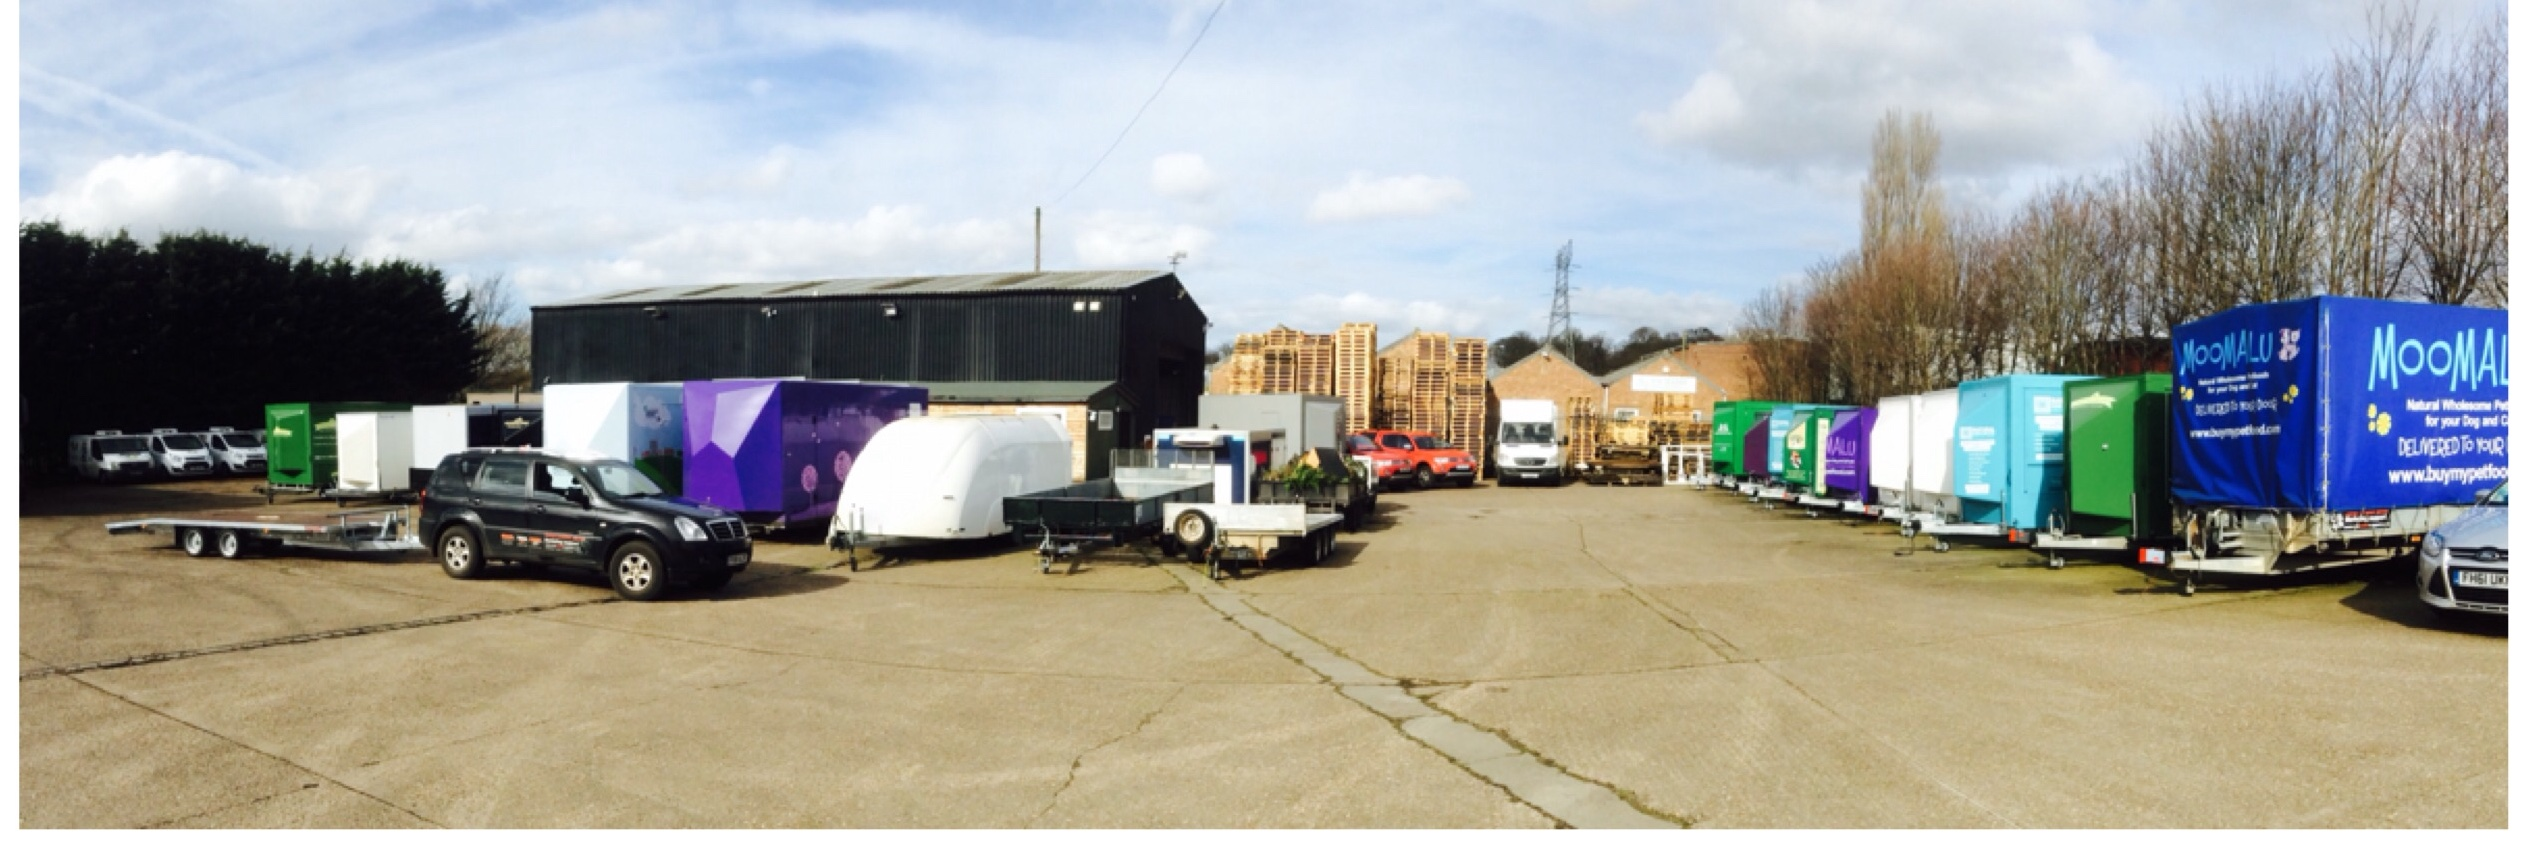 contract exhibition services trailers marketing support